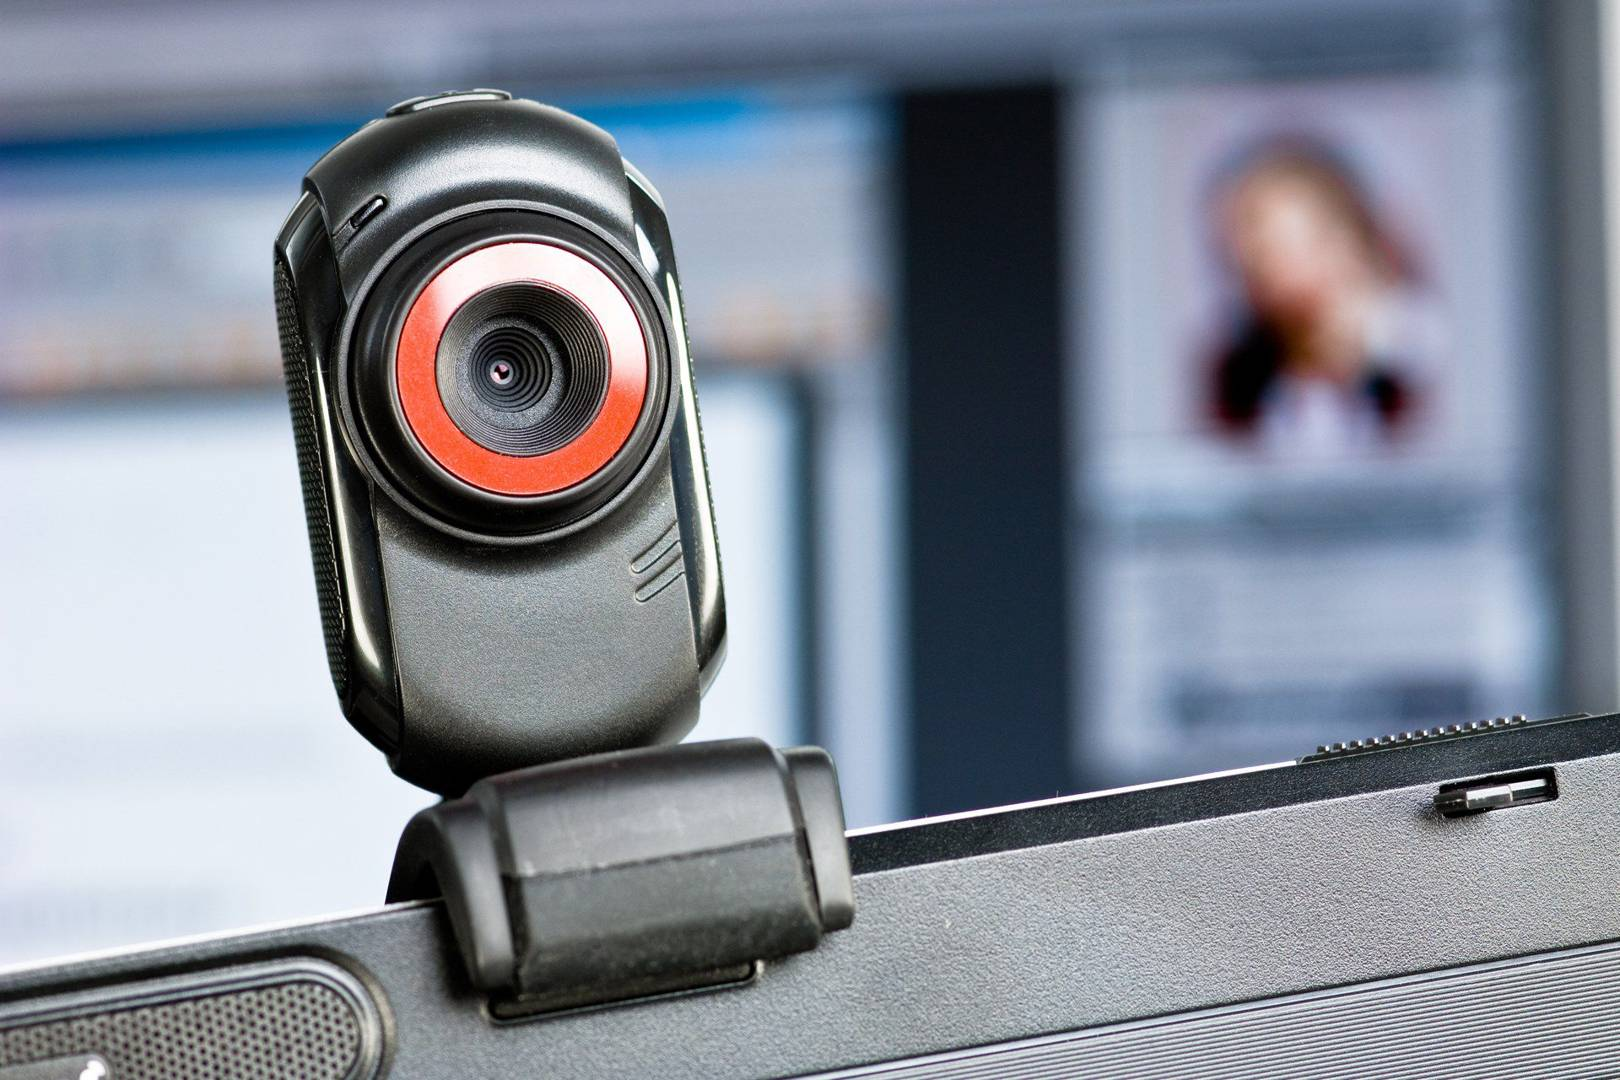 Meet the men who spy on women through their webcams | WIRED UK